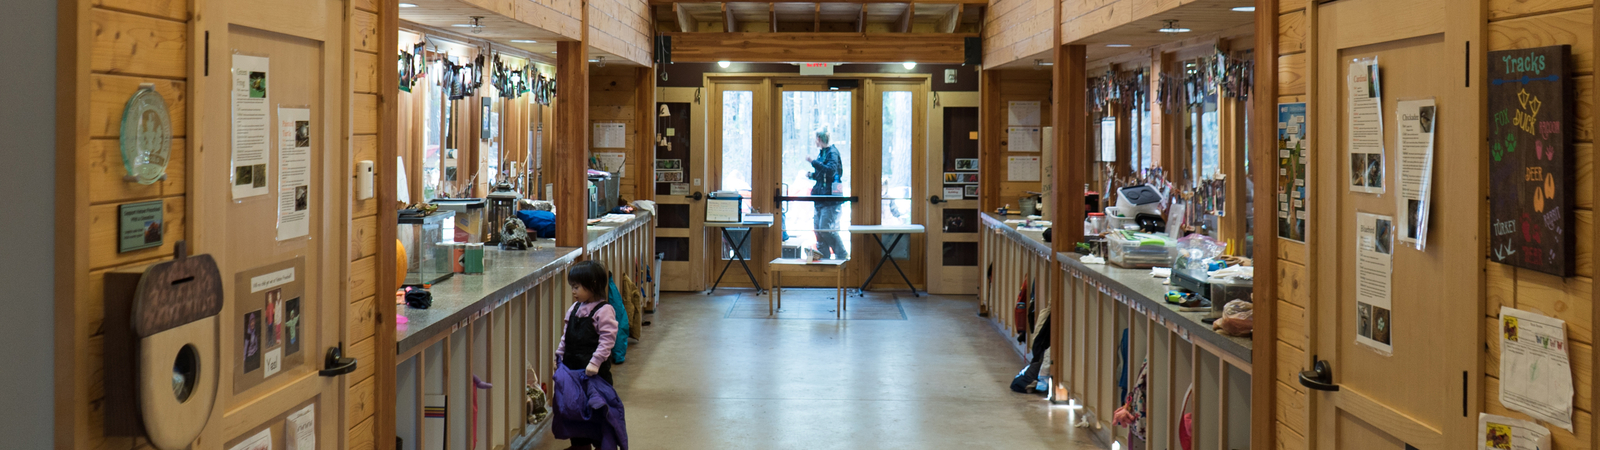 Inside the nature preschool at Chippewa Nature Center <span class='image-credits'>Ben Tierney</span>